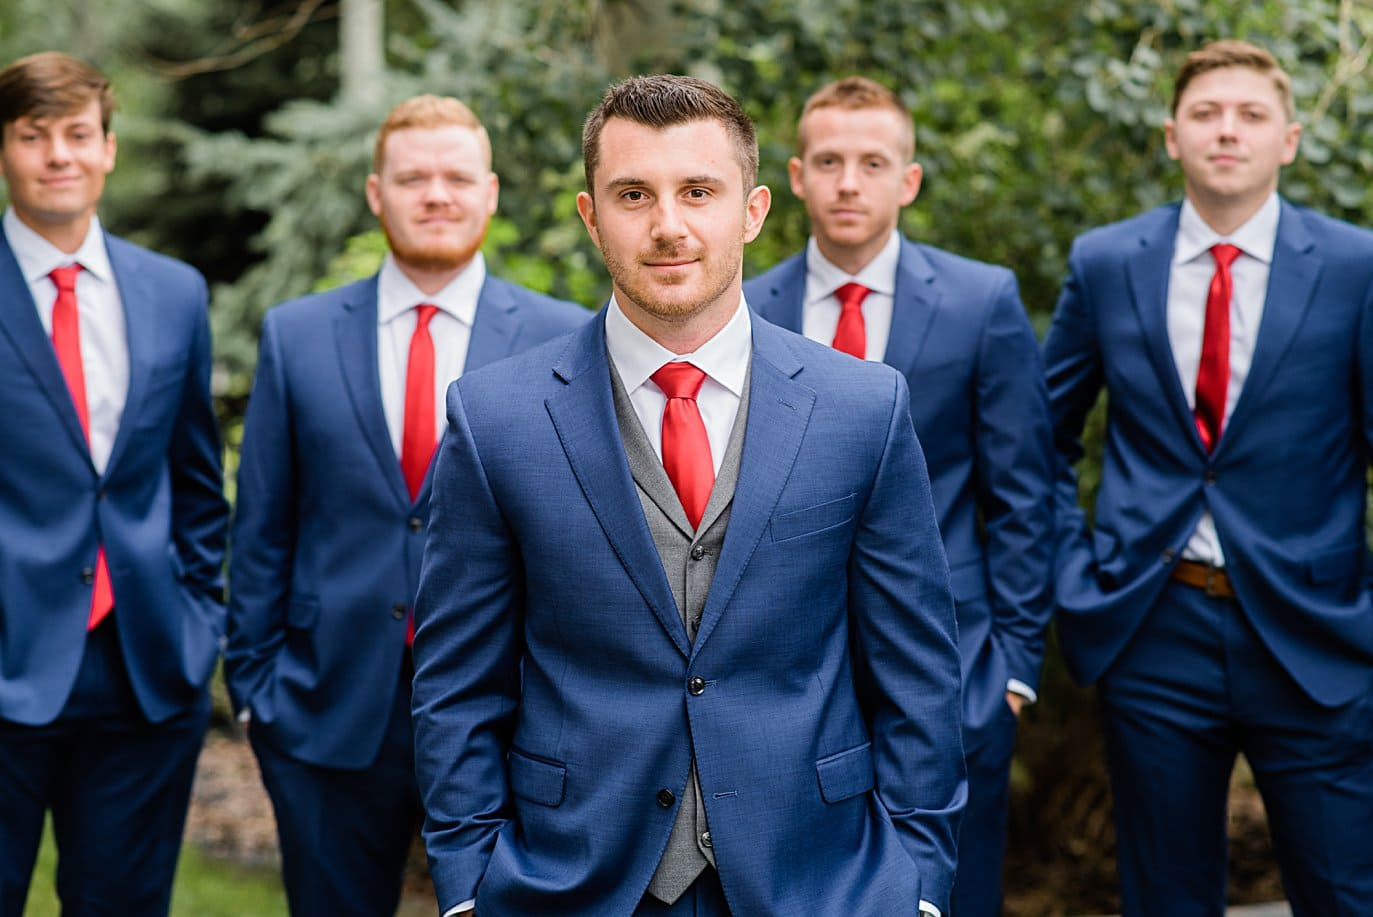 groom and groomsmen in navy suits and red ties at Larkspur Vail Wedding by Vail Wedding photographer Jennie Crate